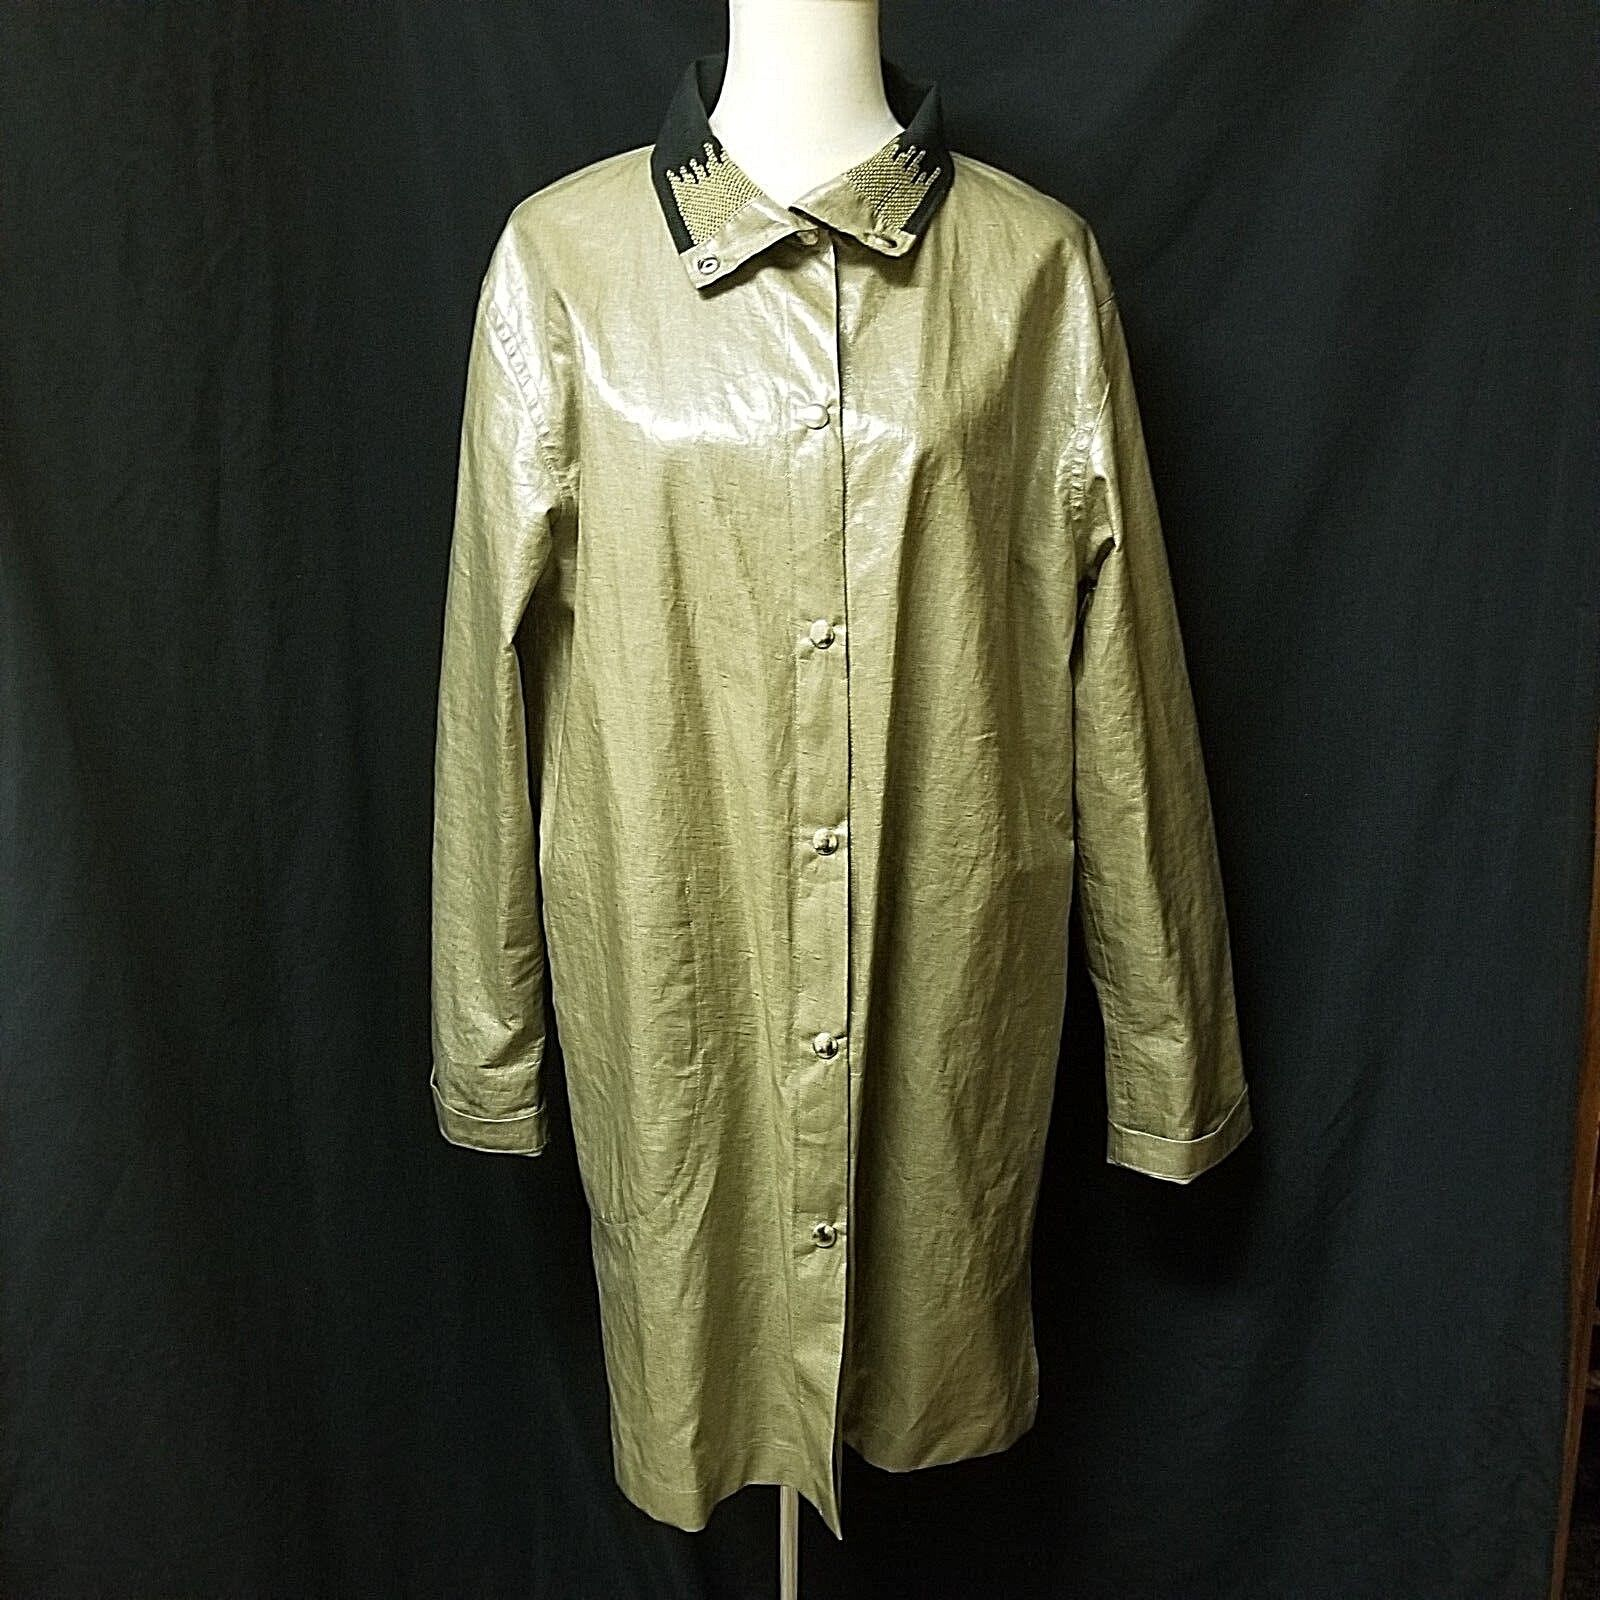 NWOT ROXY WELLS & TYLOR WELLS Sz M BEIGE COATED LINEN REVERSIBLE TRENCH RAINCOAT